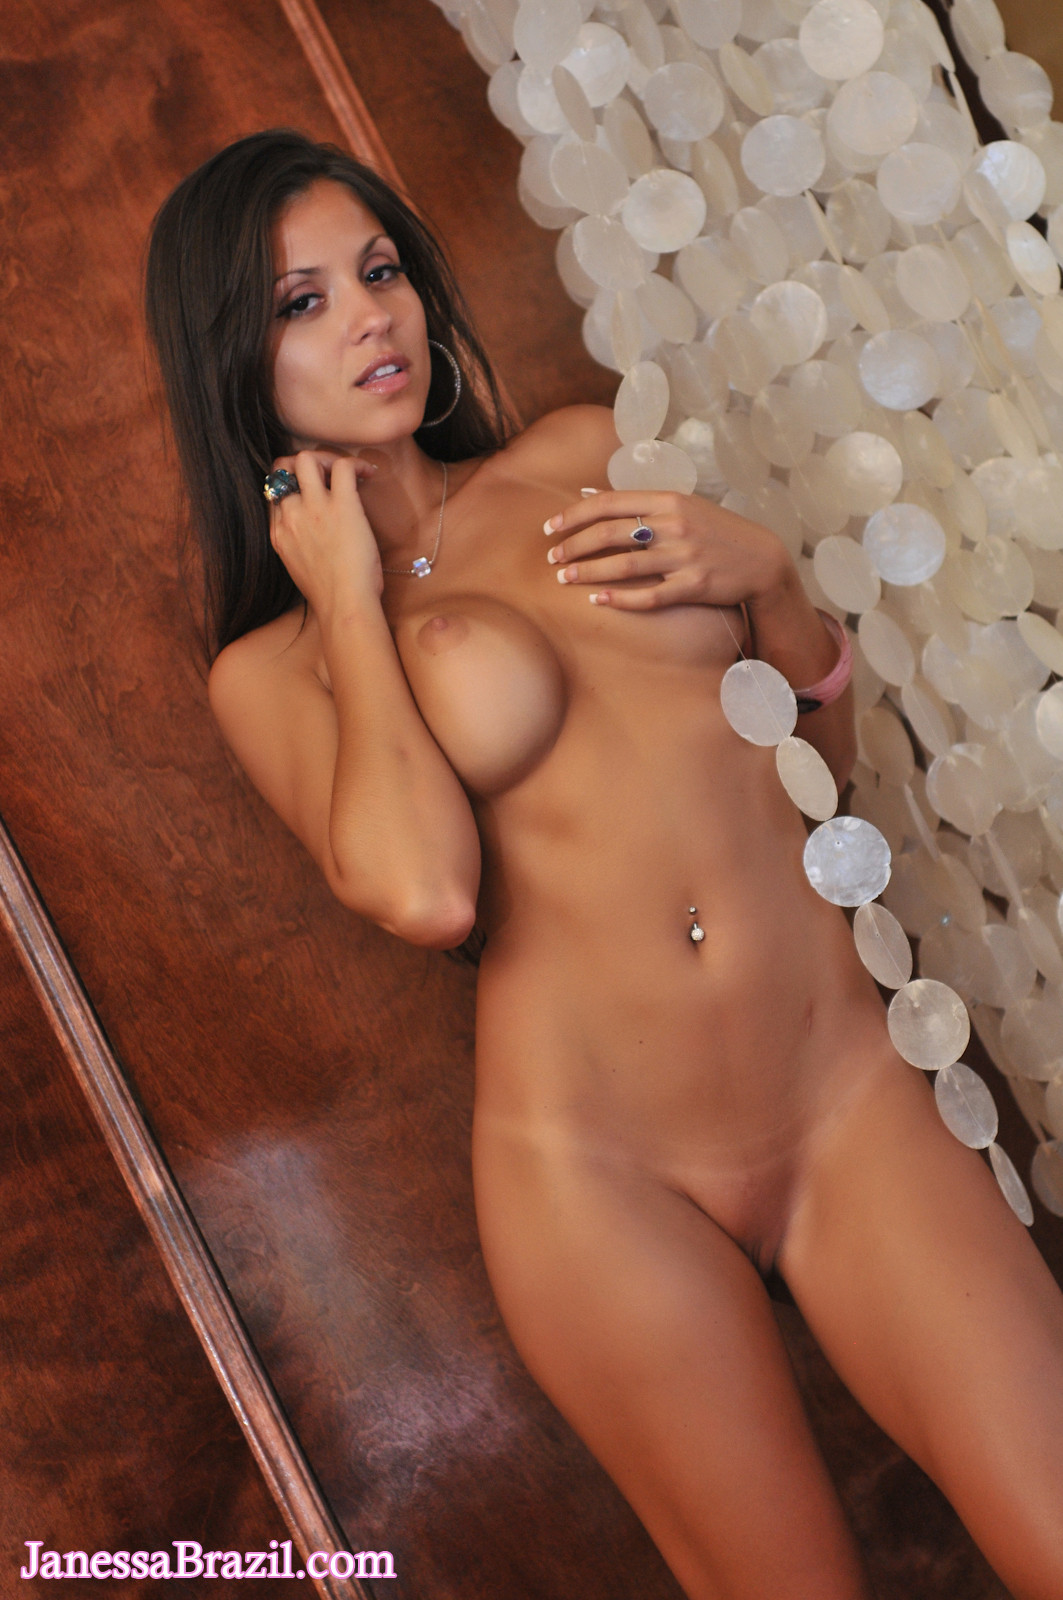 Brazil girls hot and nude remarkable, rather